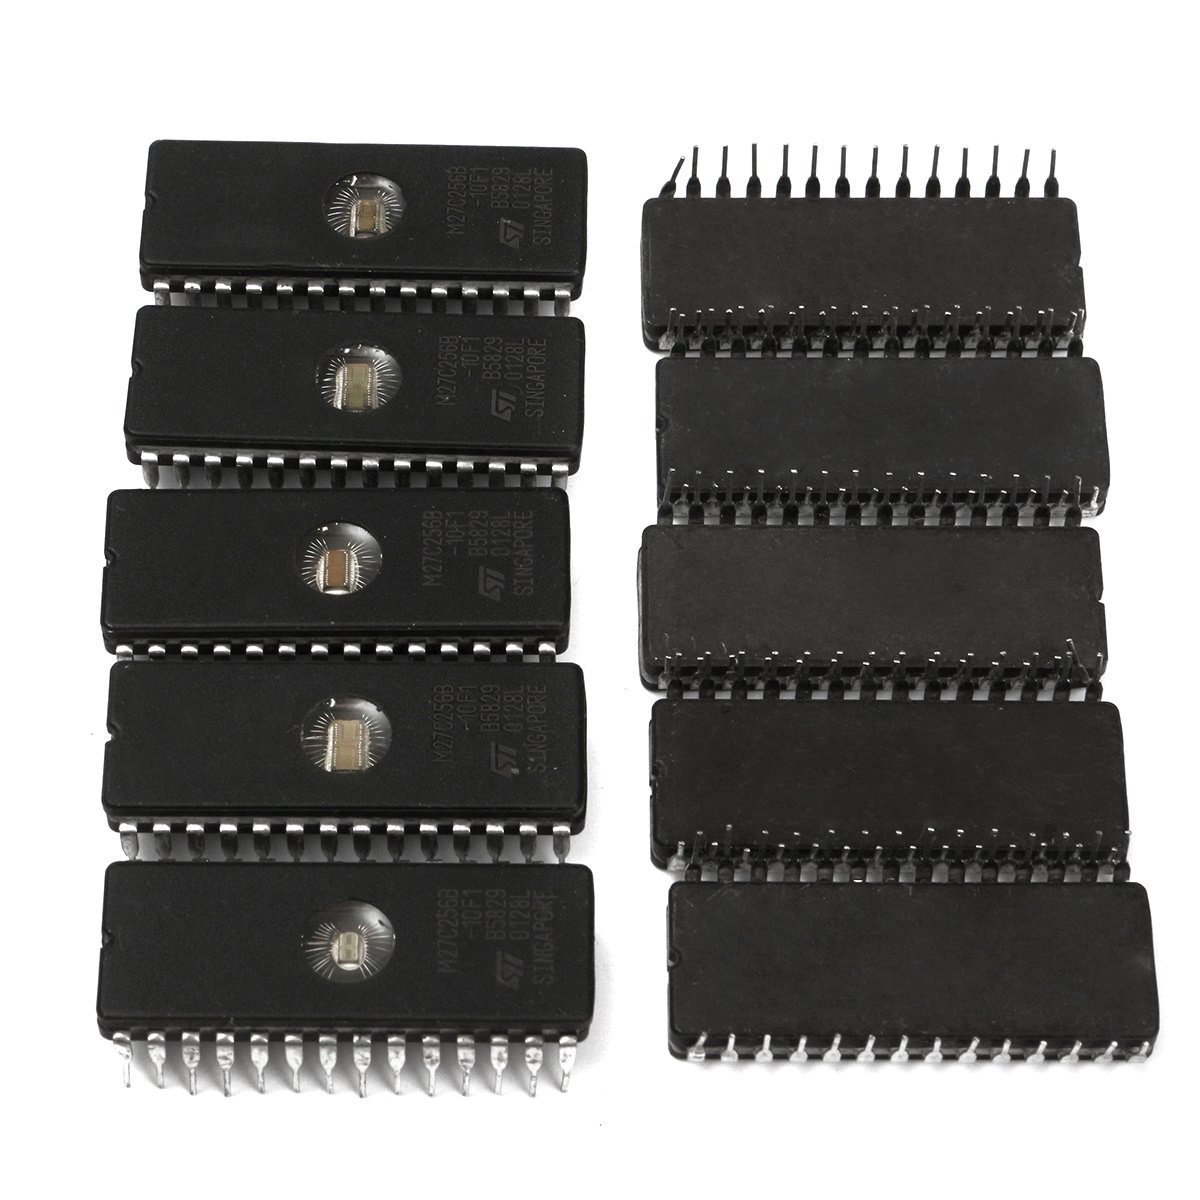 10f1 Eproms Electronic Integrated Circuit Chip Sale Banggoodcom